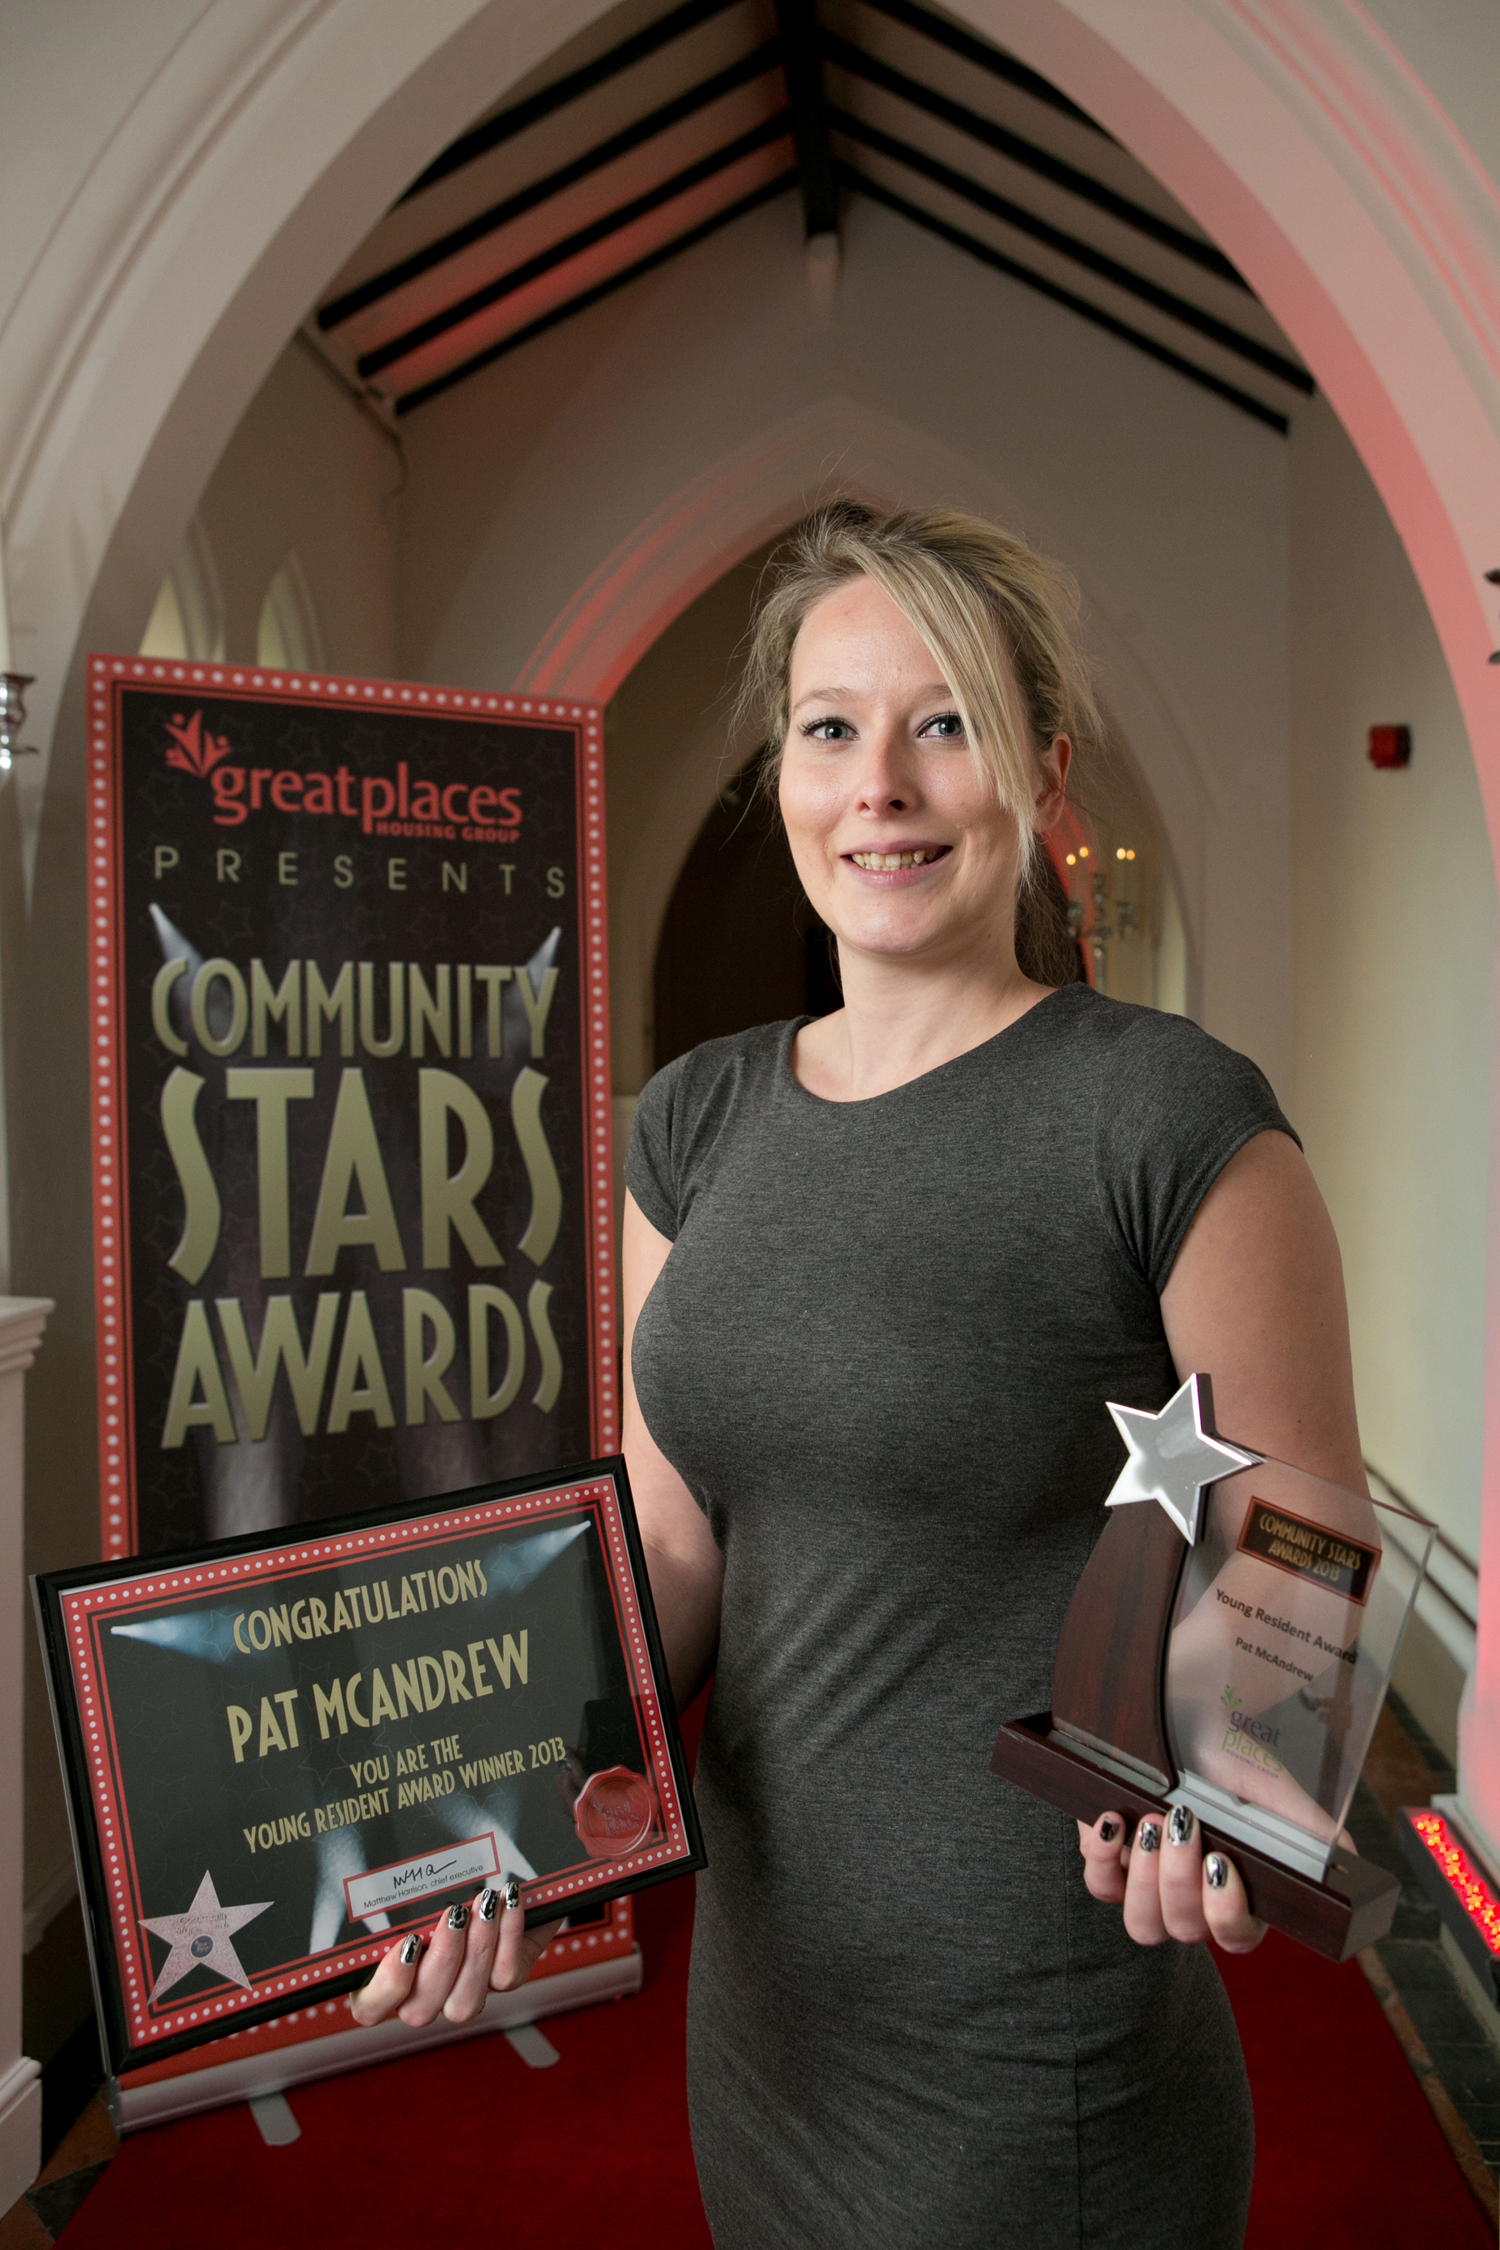 Community Spirit and its members lauded by housing association